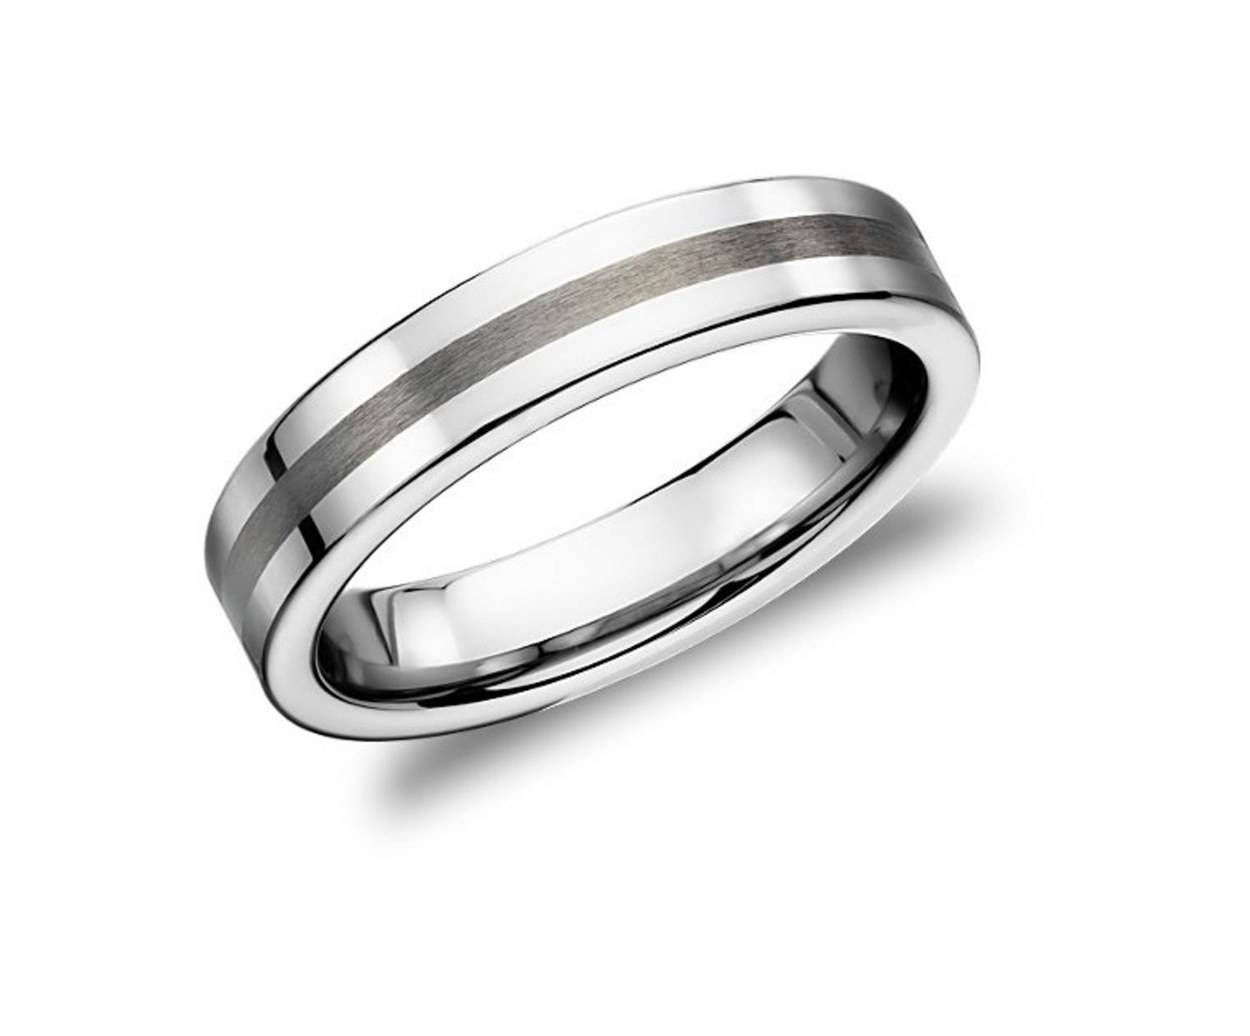 15 Men's Wedding Bands Your Groom Won't Want To Take Off | Glamour Within Guys Wedding Bands (View 1 of 15)